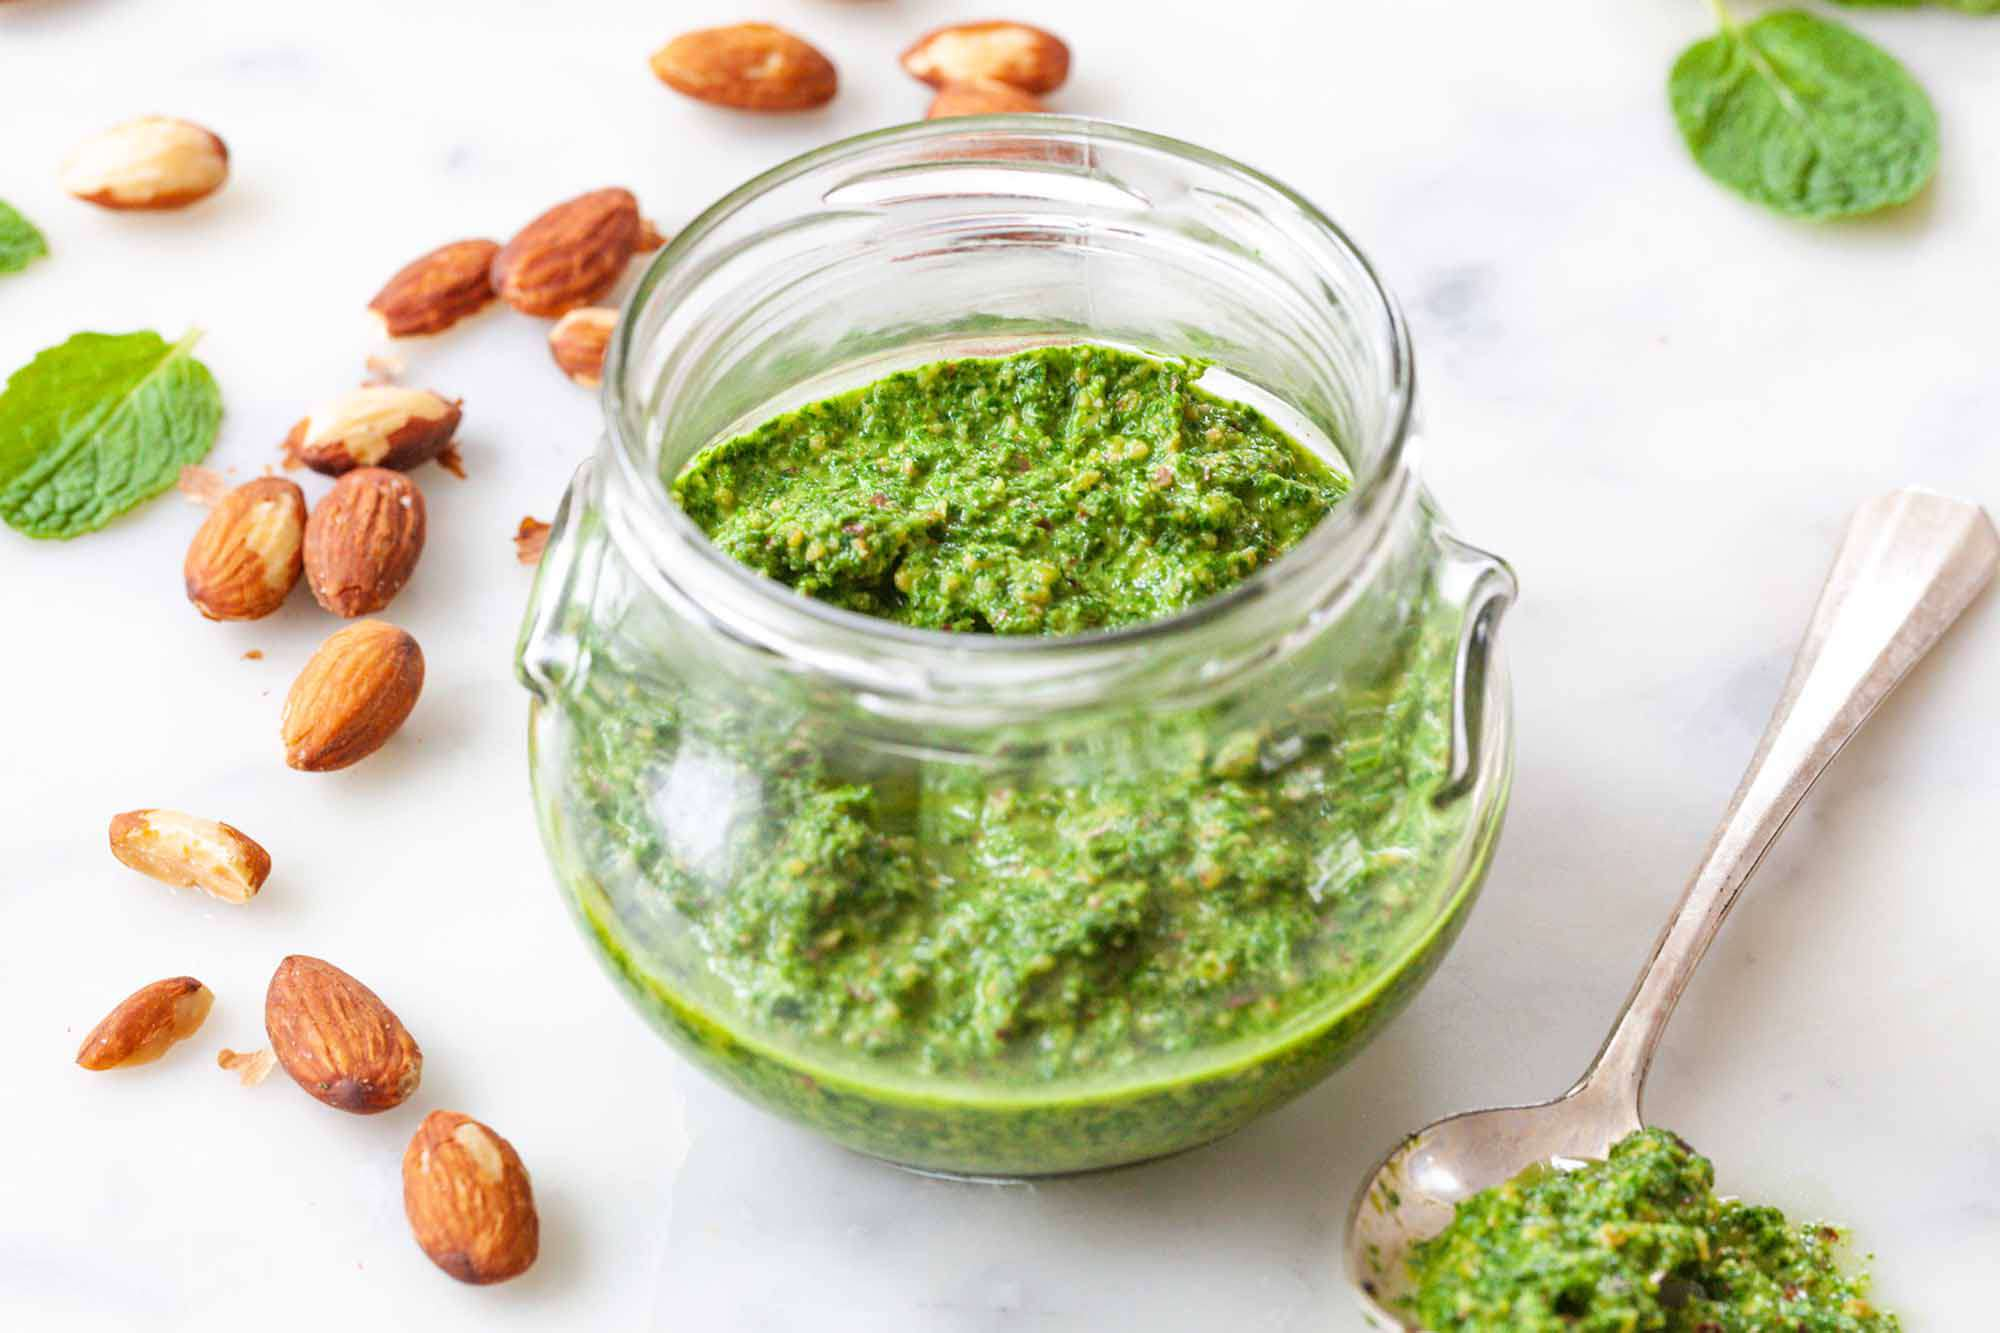 Mint Pesto Sauce - jar of mint pesto on white counter with almonds scattered about and a spoonful of pesto sitting next to the jar